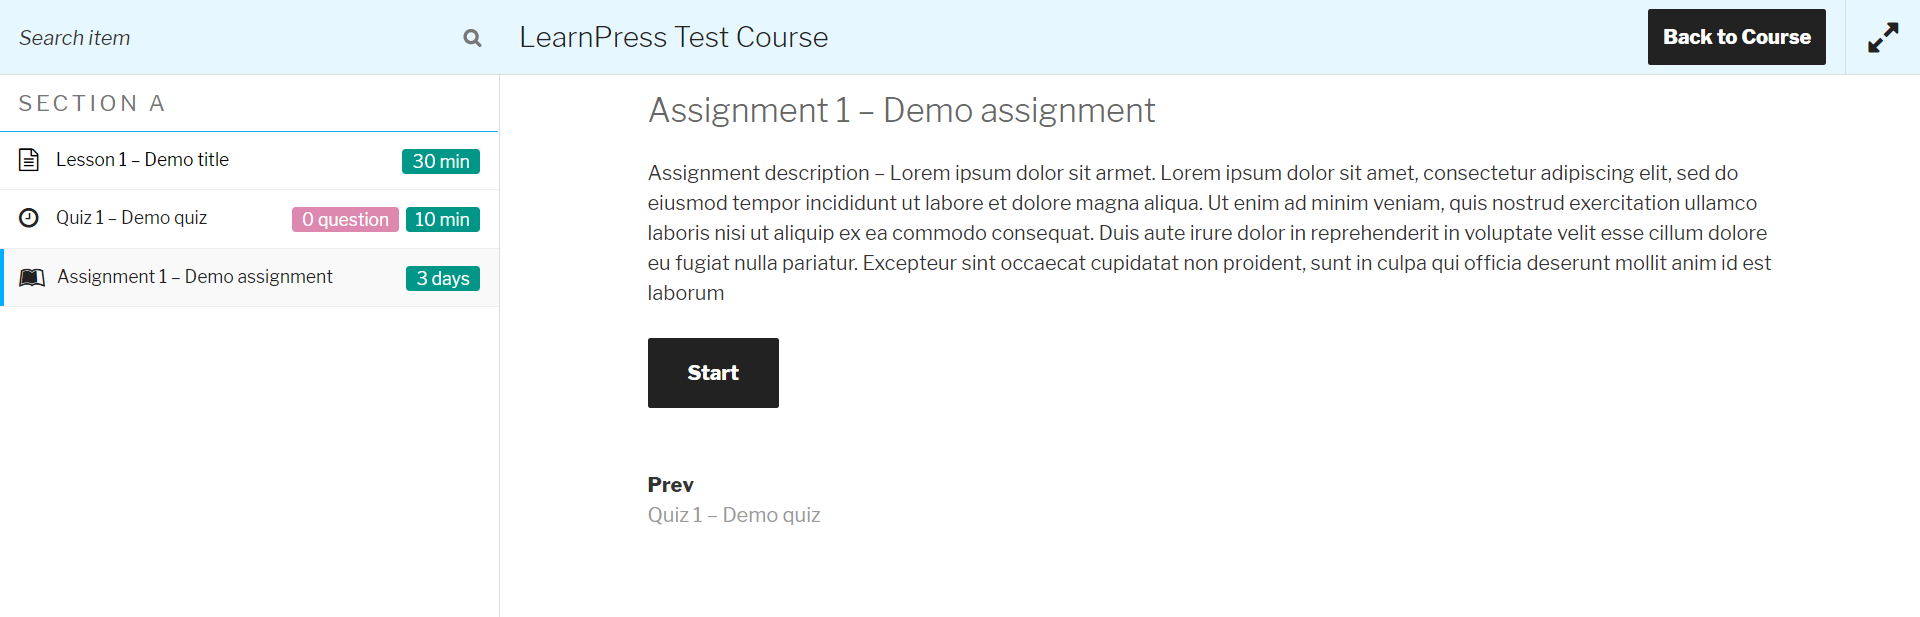 Assignments Add-on for LearnPress